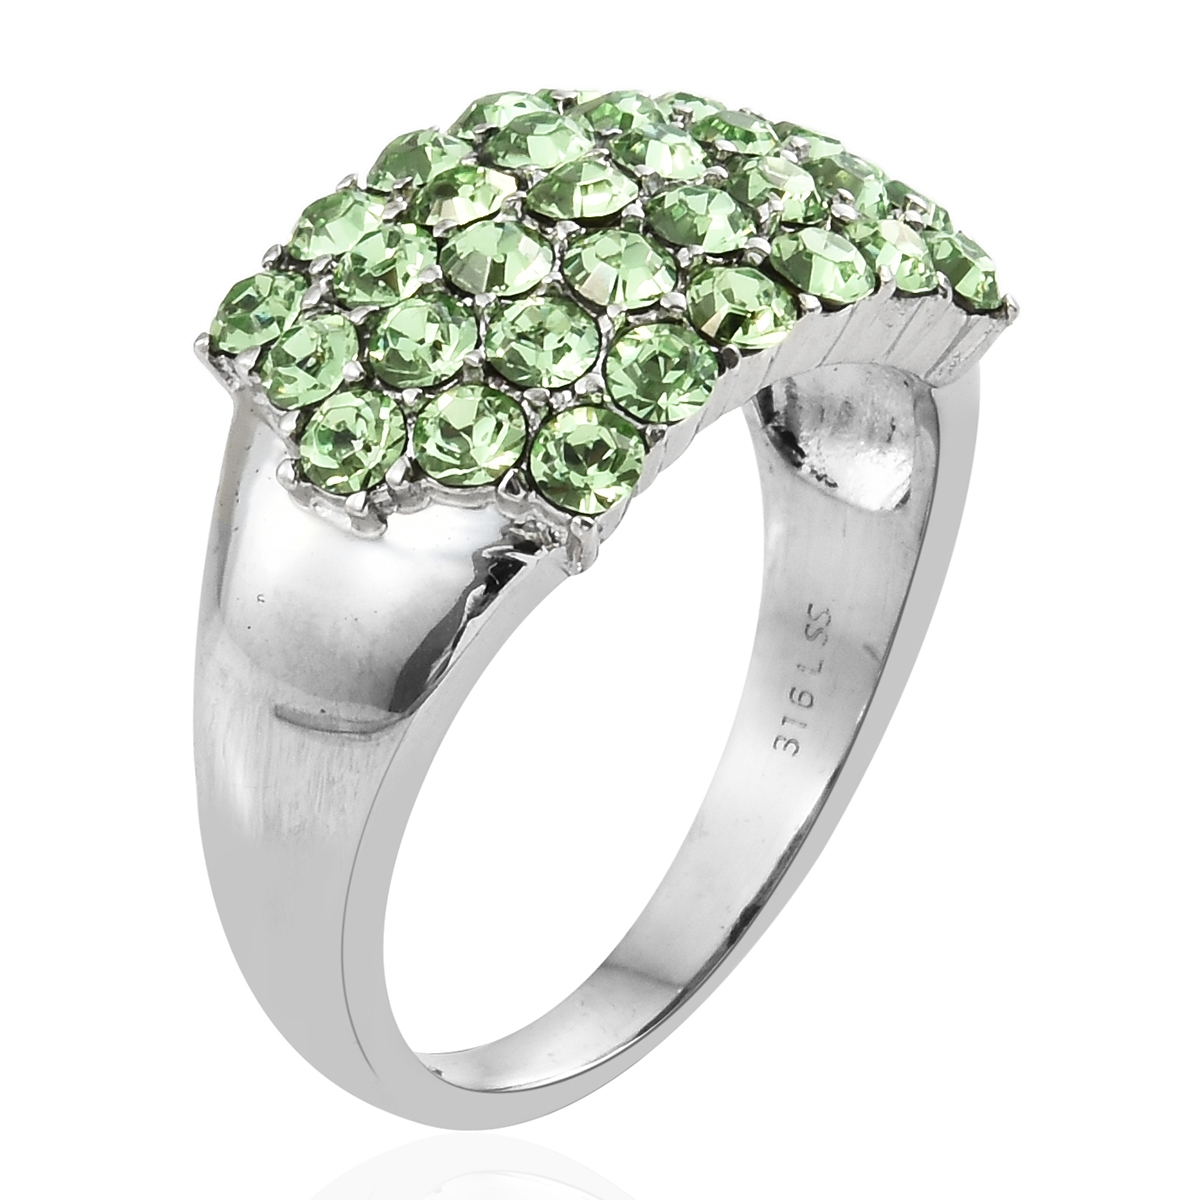 e658df7efcc9 Stainless Steel Ring (Size 6.0) Made with SWAROVSKI Peridot Crystal TGW  2.10 cts.